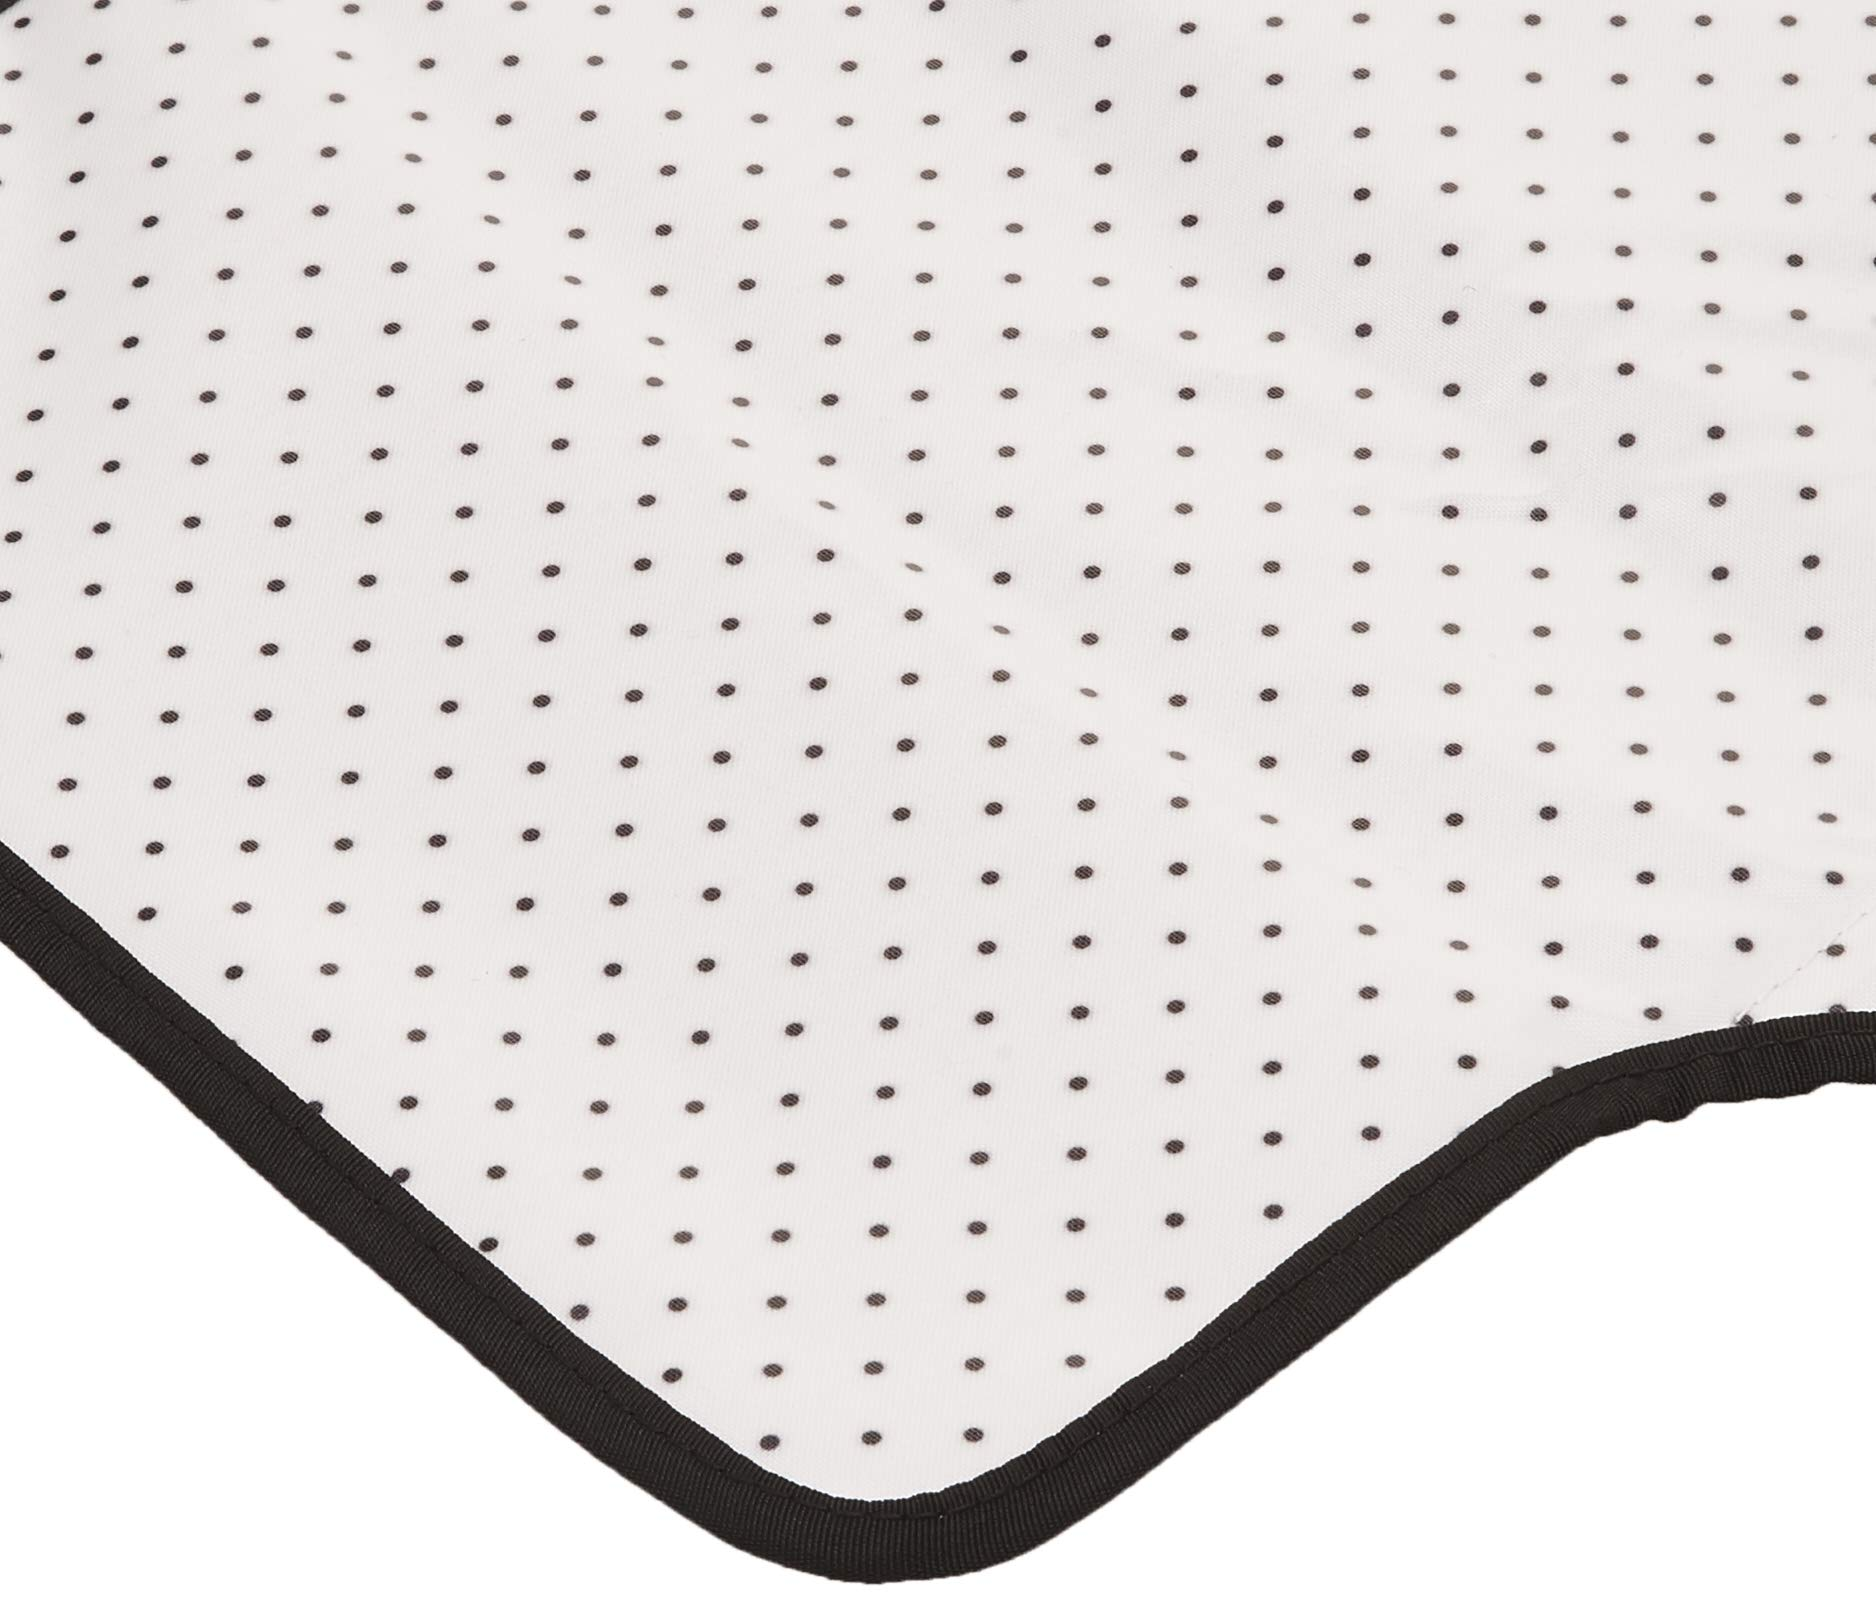 Skip Hop Pronto Signature Portable Changing Mat, Cushioned Diaper Changing Pad with Built-in Pillow, Grey Melange by Skip Hop (Image #4)